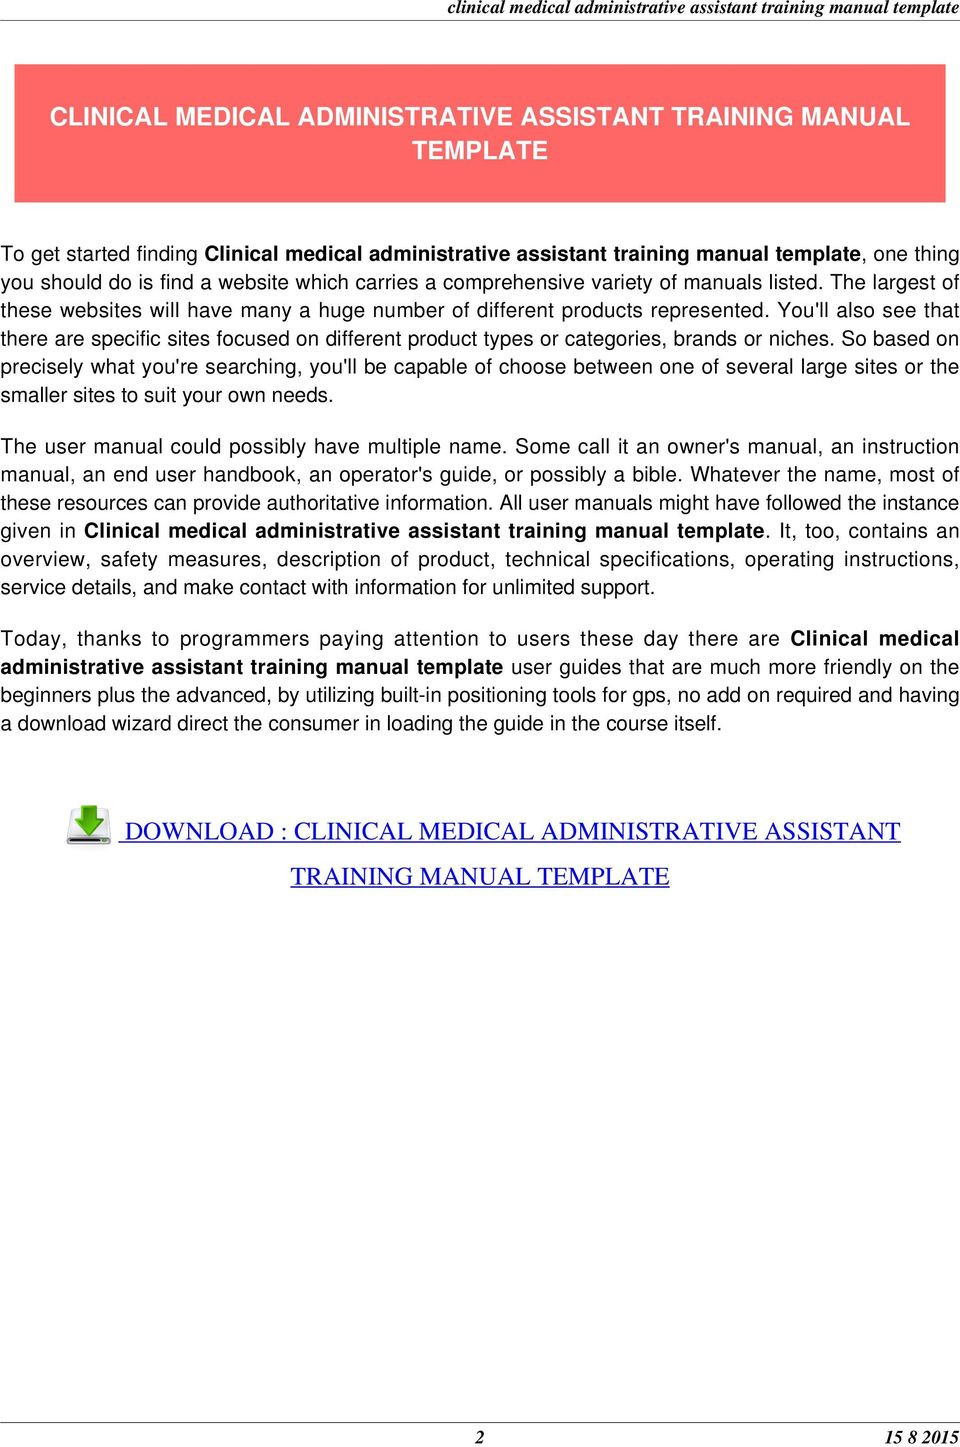 ... CLINICAL MEDICAL ADMINISTRATIVE ASSISTANT TRAINING MANUAL TEMPLATE.  You'll also see that there are specific sites focused on different product  types or